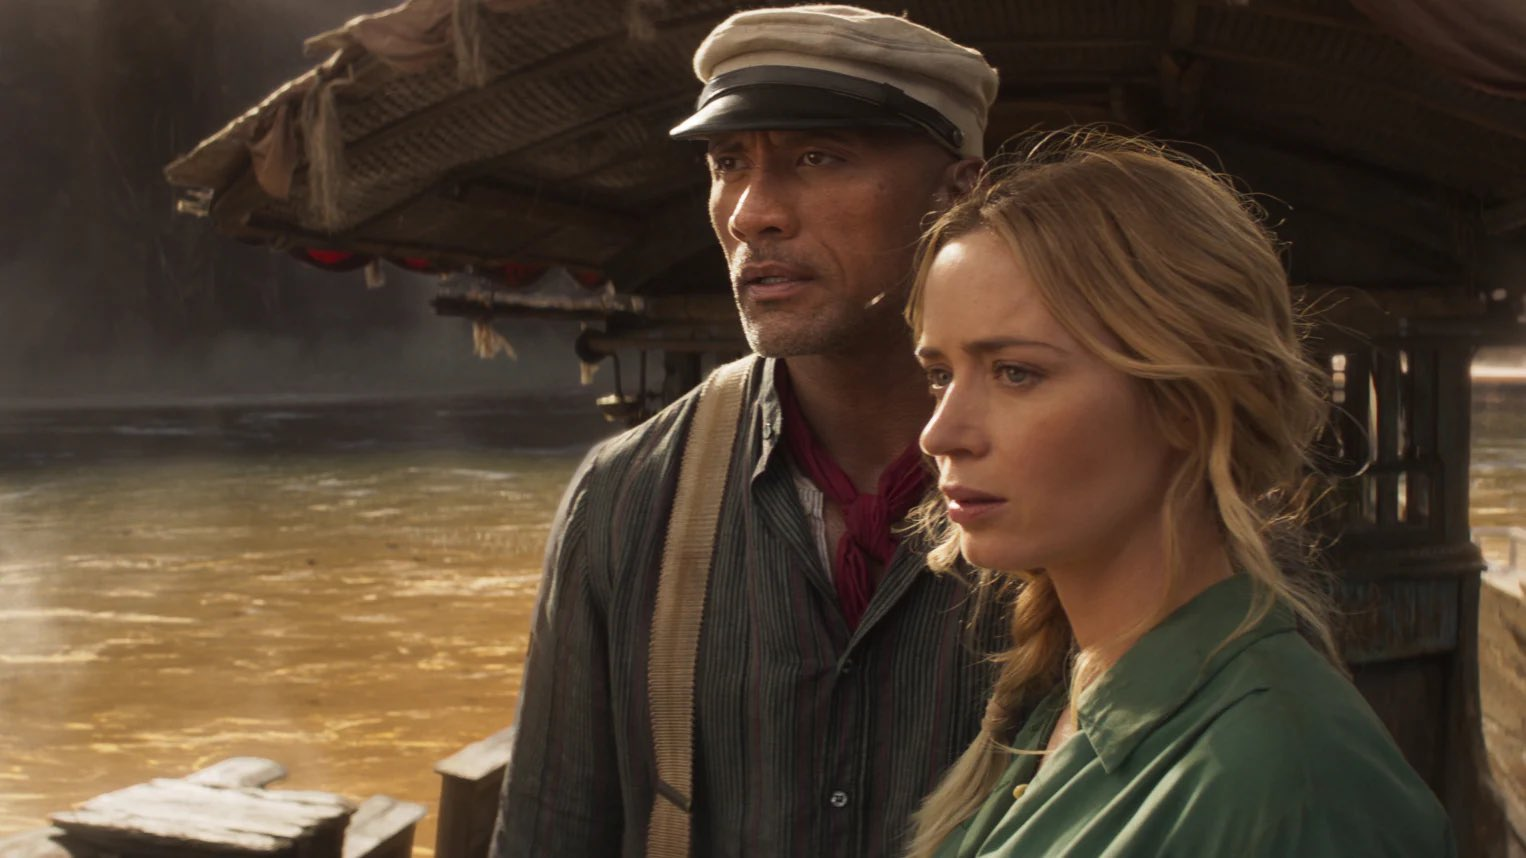 Disney's 'Jungle Cruise' Exceeds Expectations, Topping The Box Office With $ 34 Million